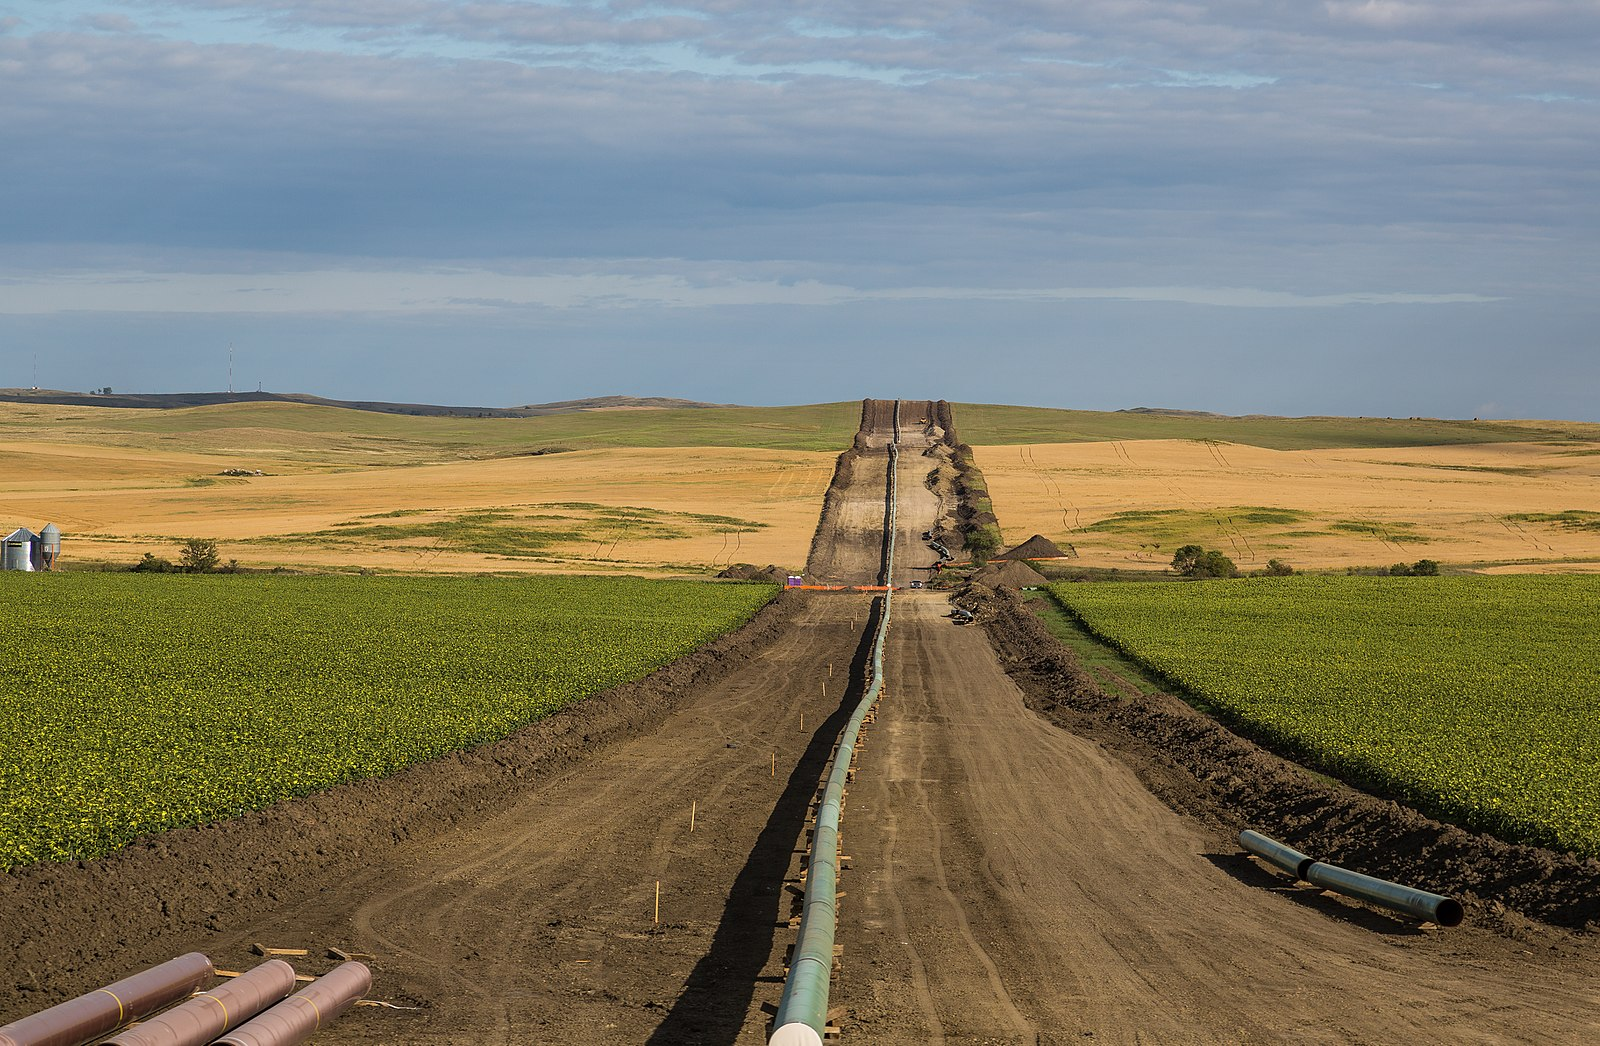 Federal appeals court orders environmental impact review of Dakota Access pipeline